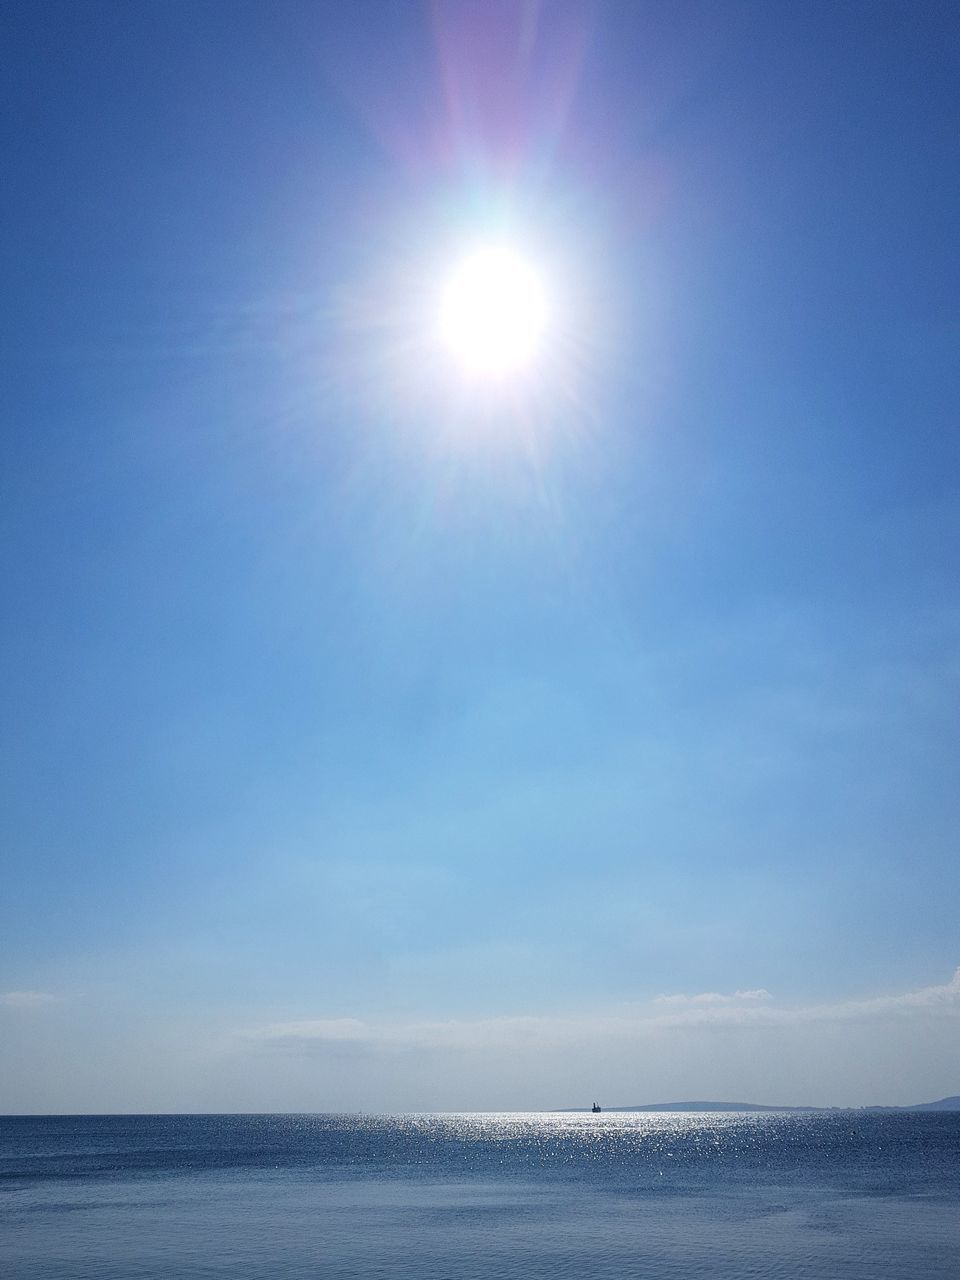 sea, sun, sunlight, water, beauty in nature, scenics, nature, sky, outdoors, tranquility, tranquil scene, day, horizon over water, no people, blue, clear sky